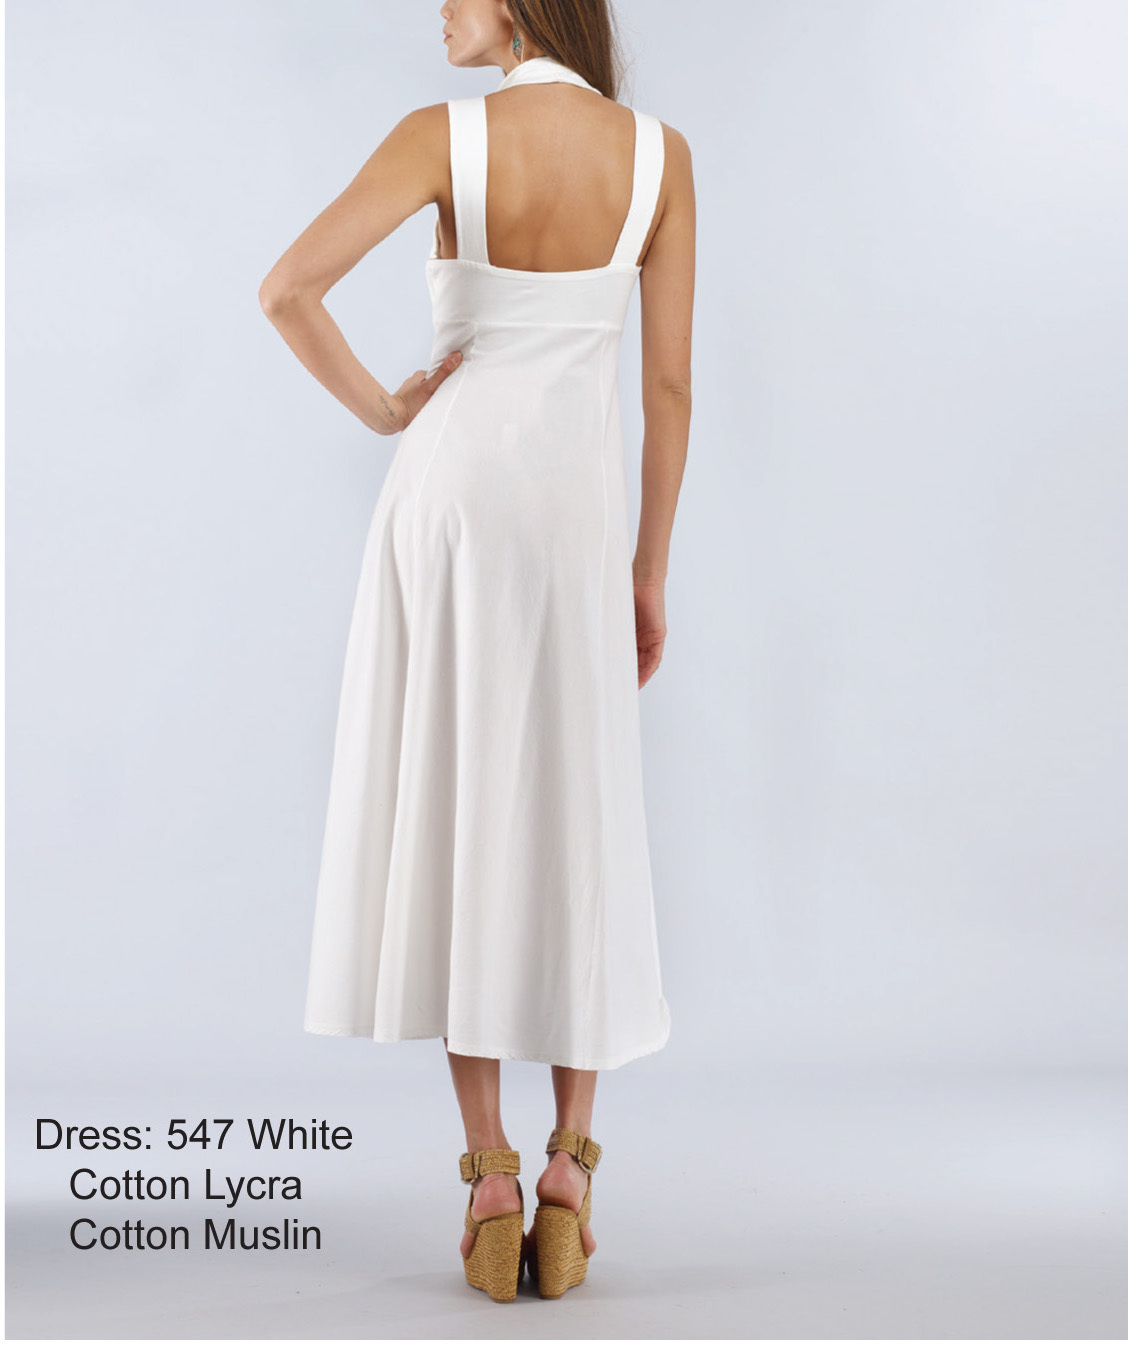 Luna Luz: Diamond Neck Cotton Muslin Dress SOLD OUT